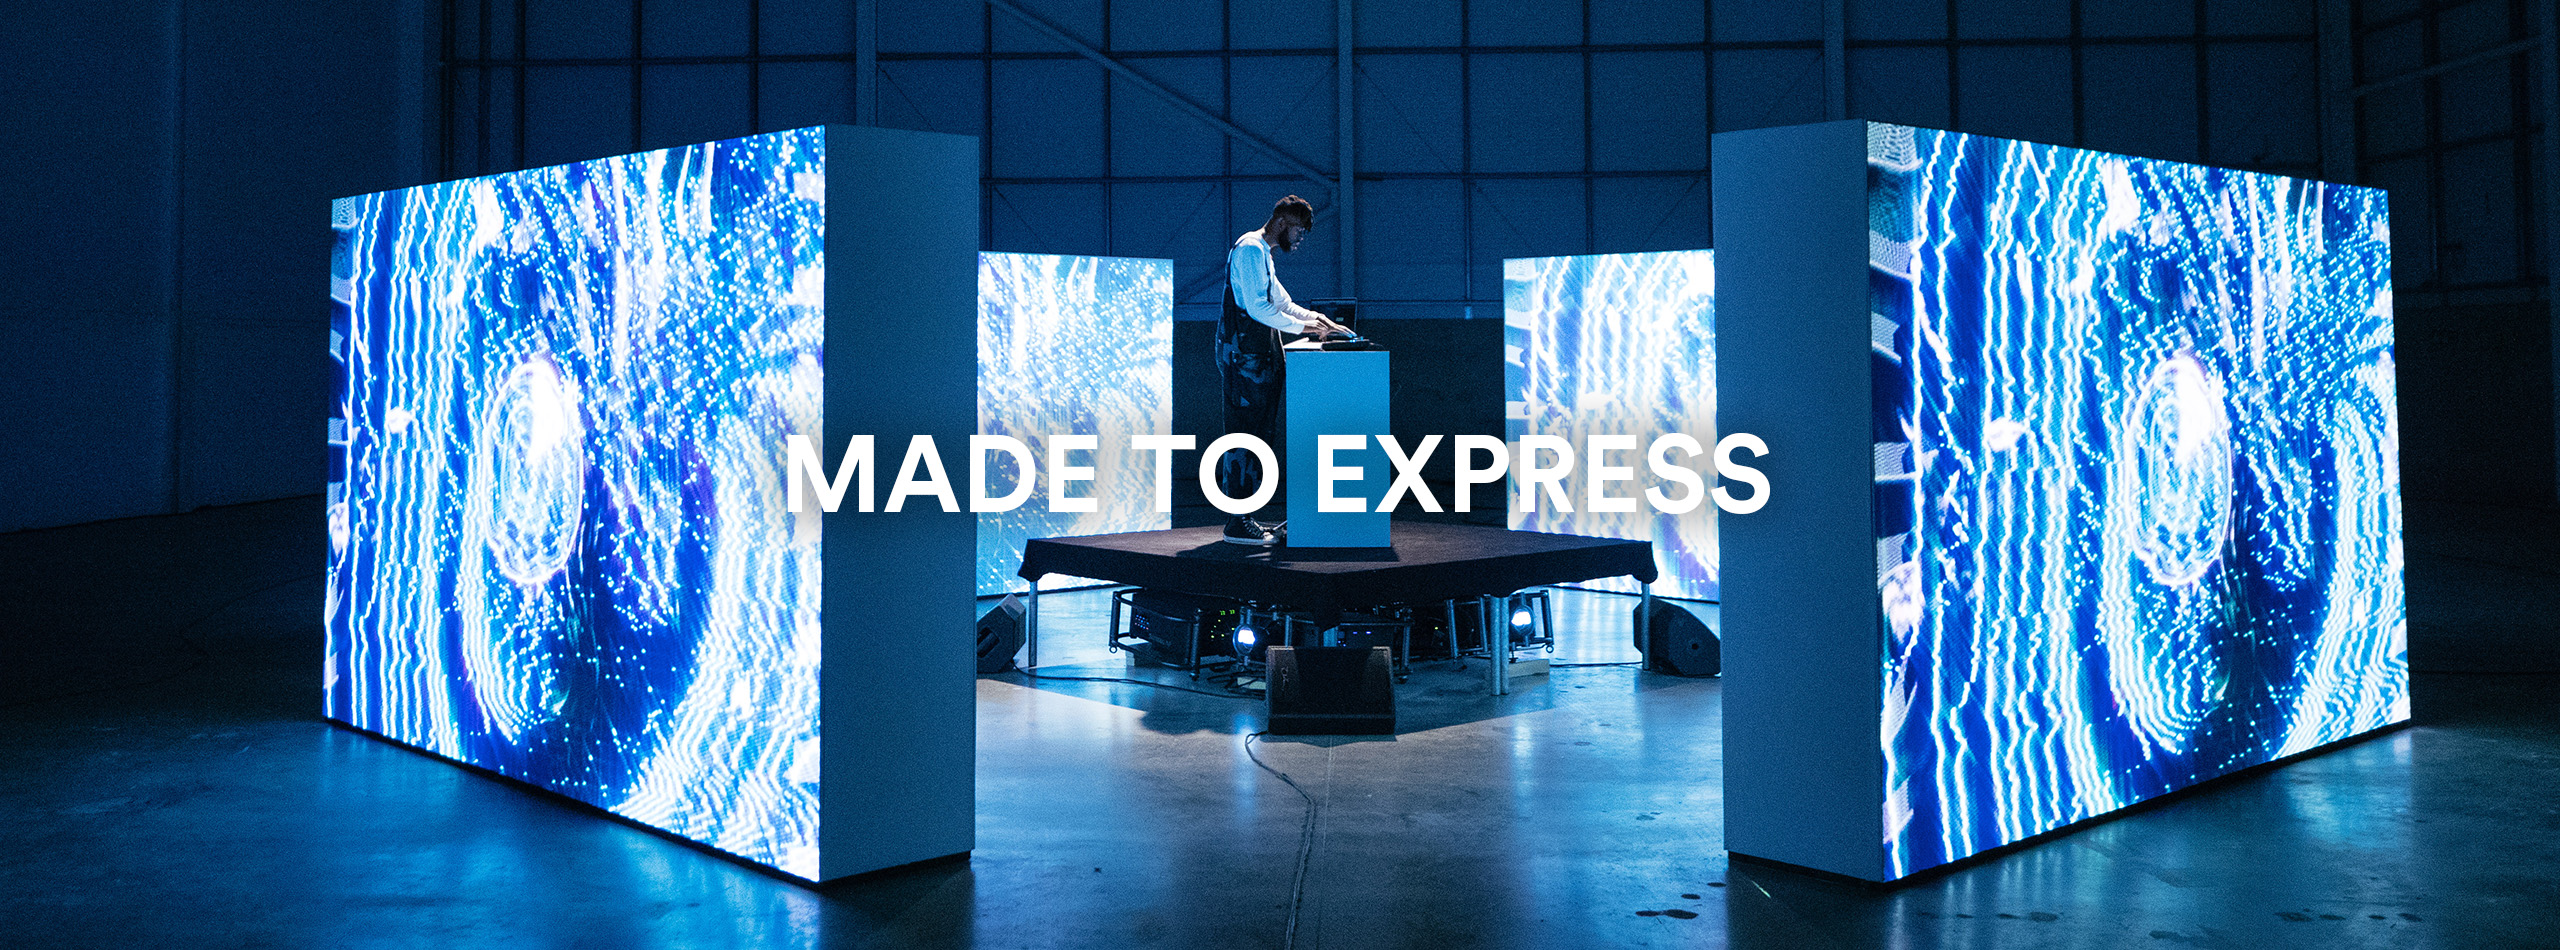 Made to express / Novation